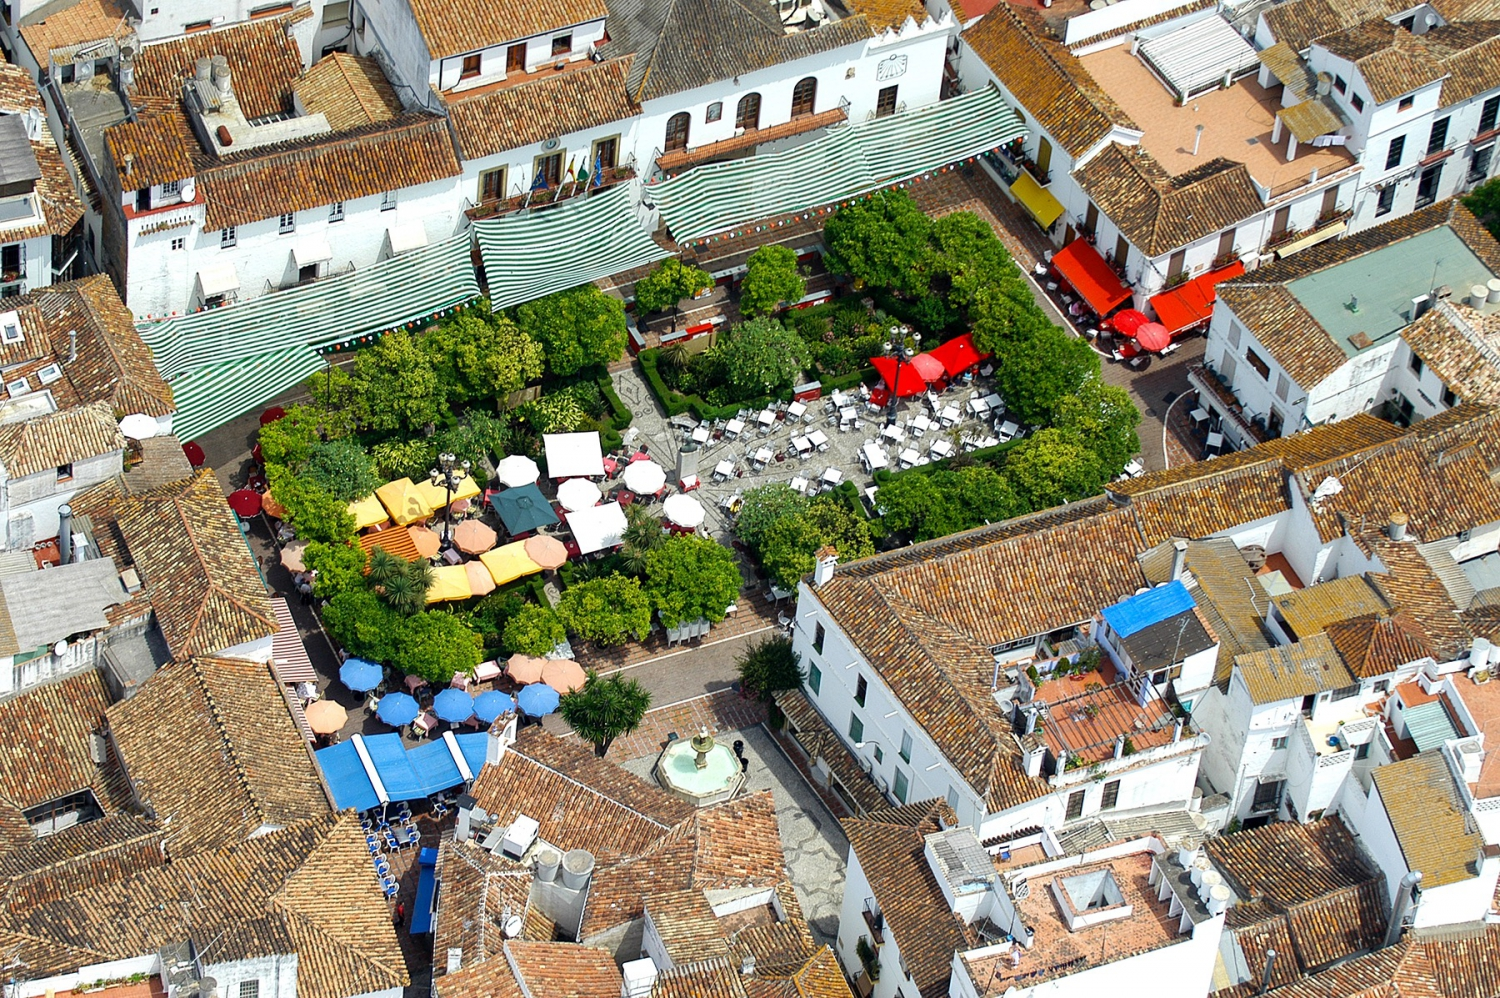 Your essential guide to Orange Square in Marbella